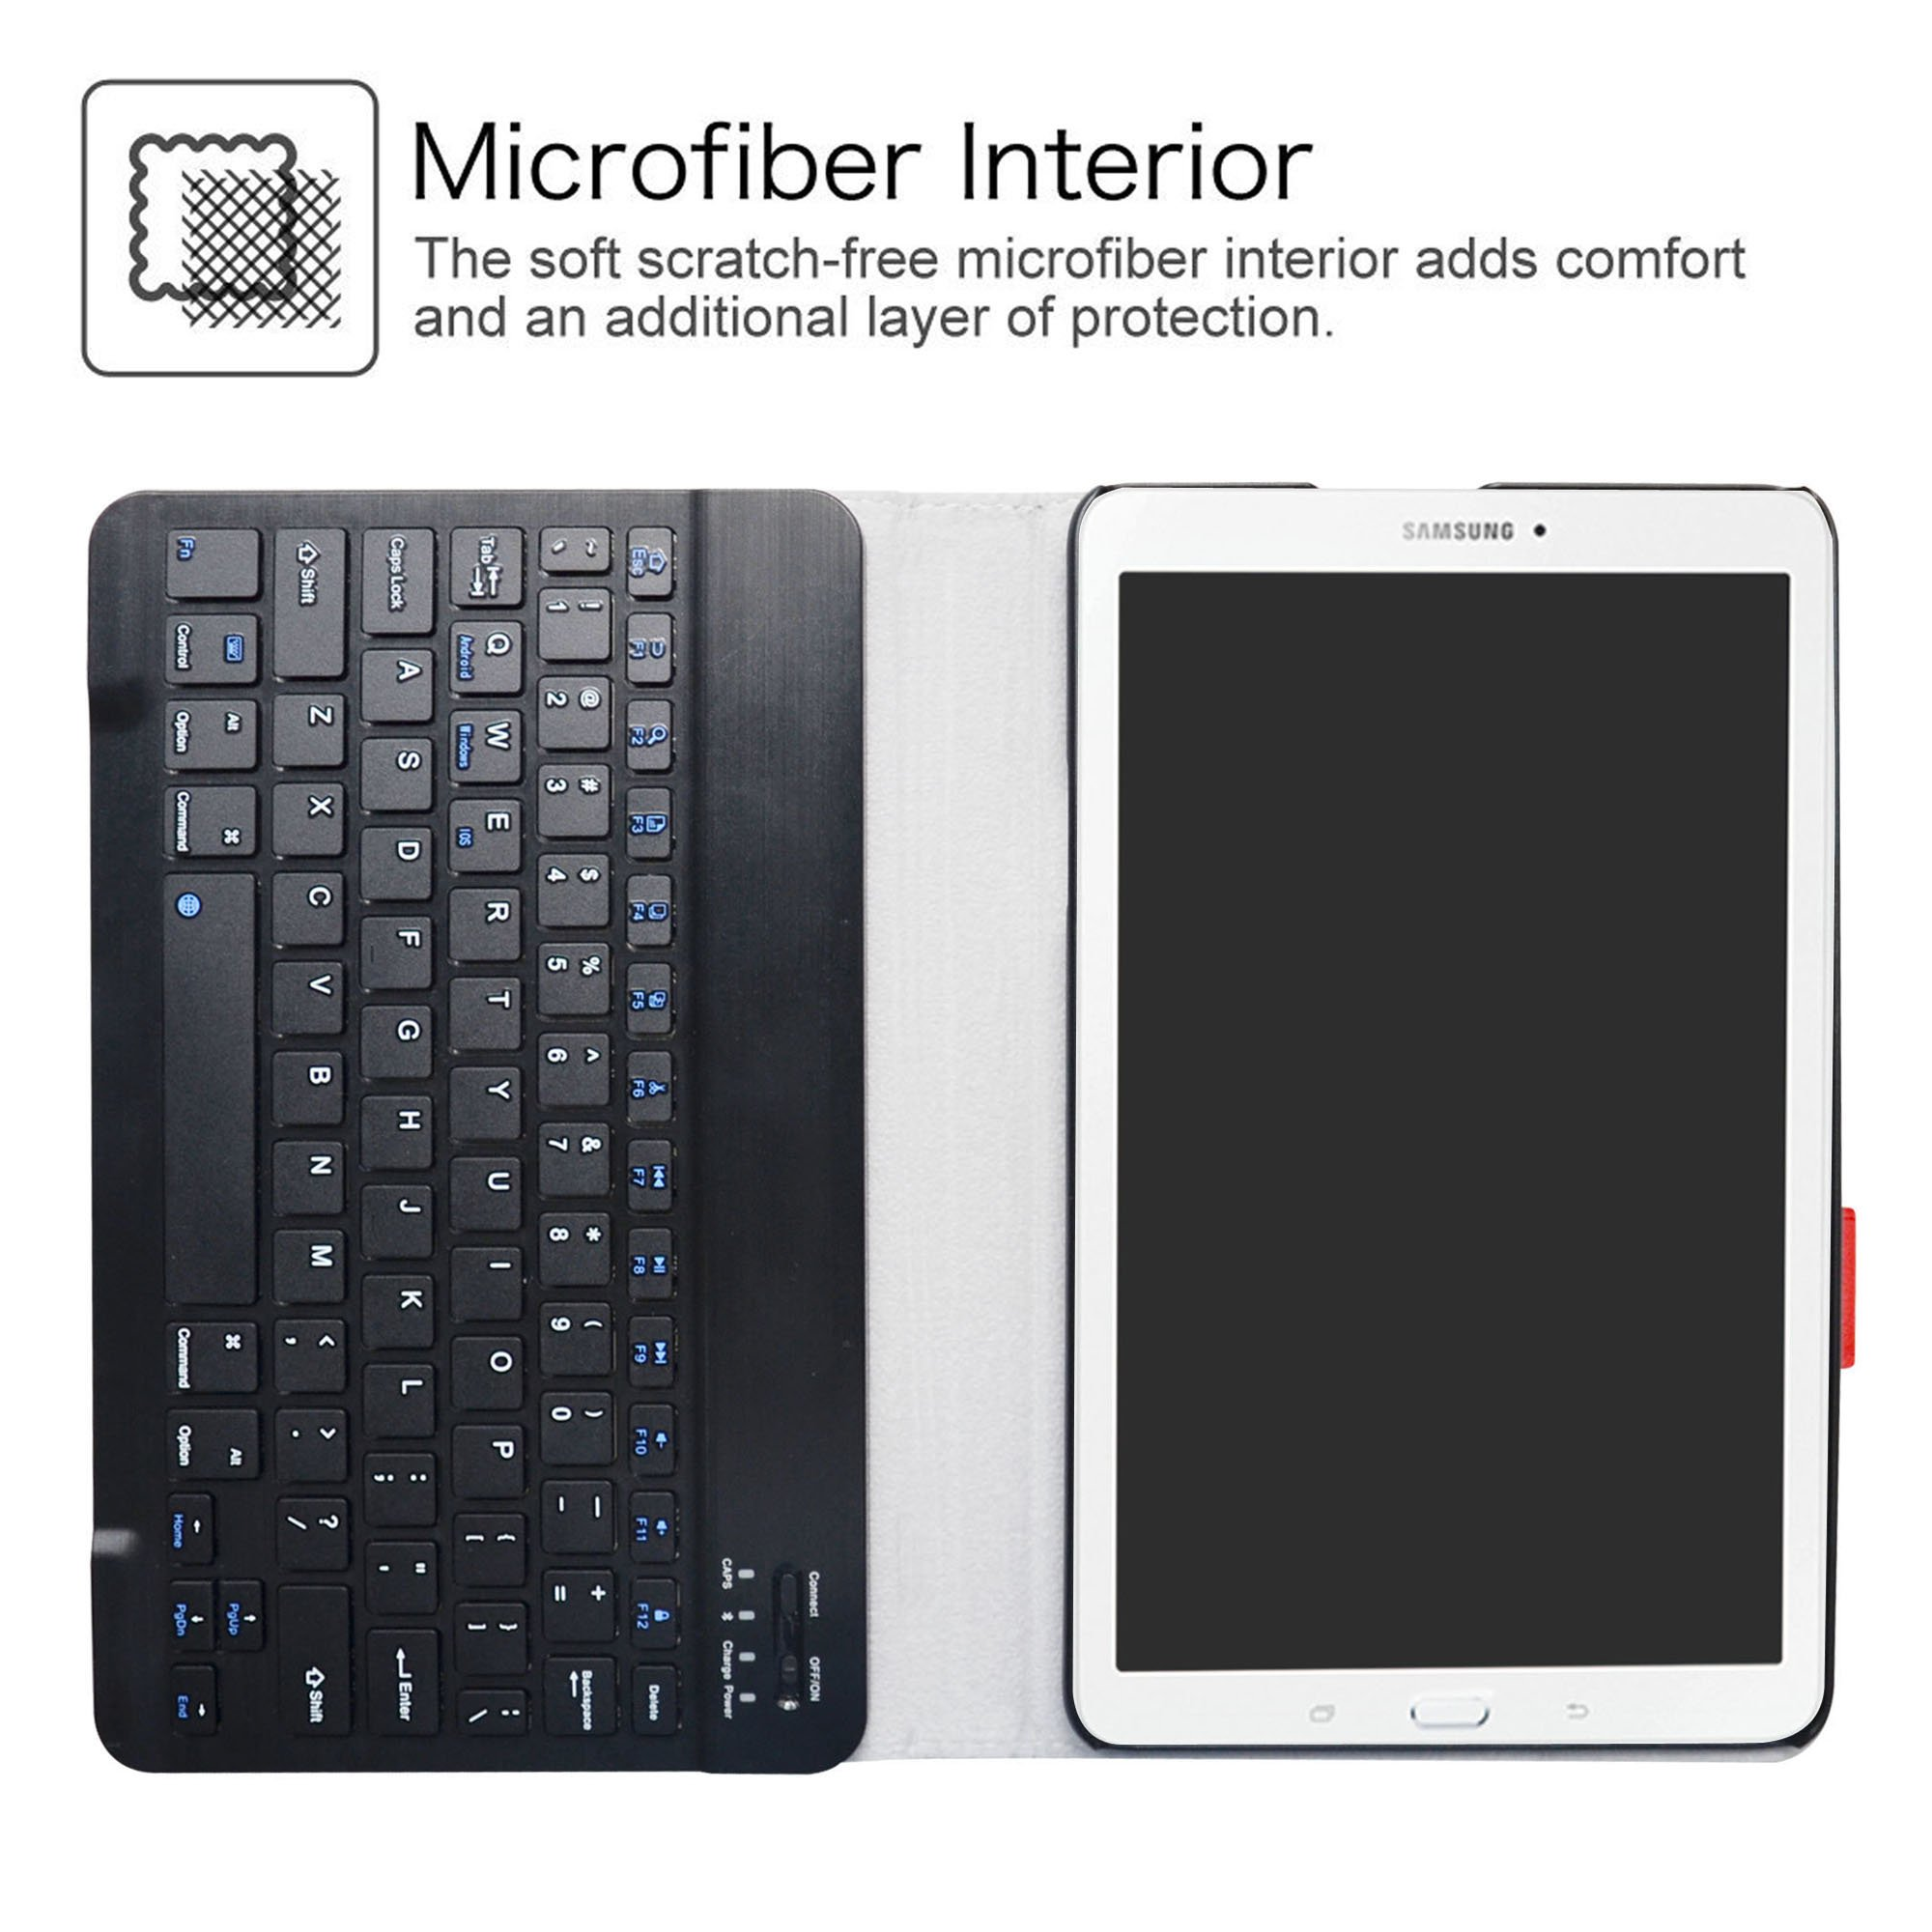 Samsung Galaxy Tab E 9.6 Bluetooth Keyboard Case,LiuShan Detachable Wireless Bluetooth Keyboard Standing PU Leather Cover for 9.6'' Samsung Galaxy Tab E 9.6 T560 Android Tablet,Black by LiuShan (Image #4)